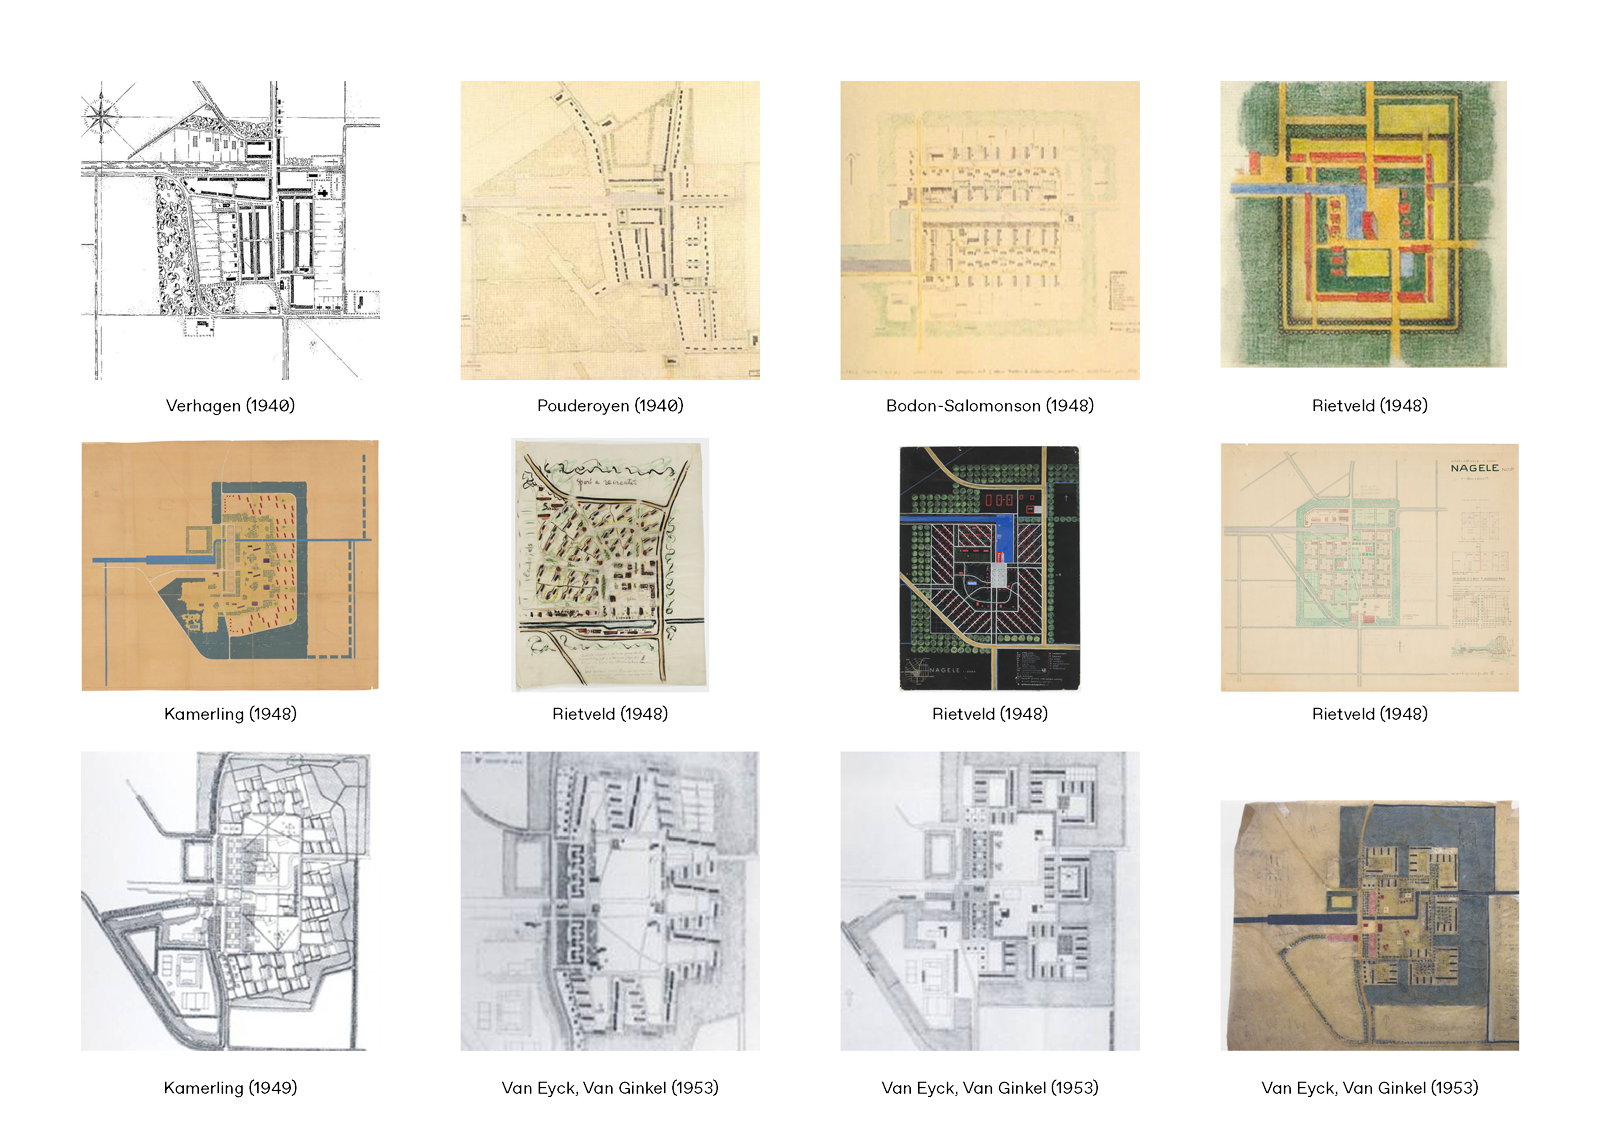 12 design iterations through the years for the village of Nagele by the likes of Rietveld, Kamerling and Van Eyck